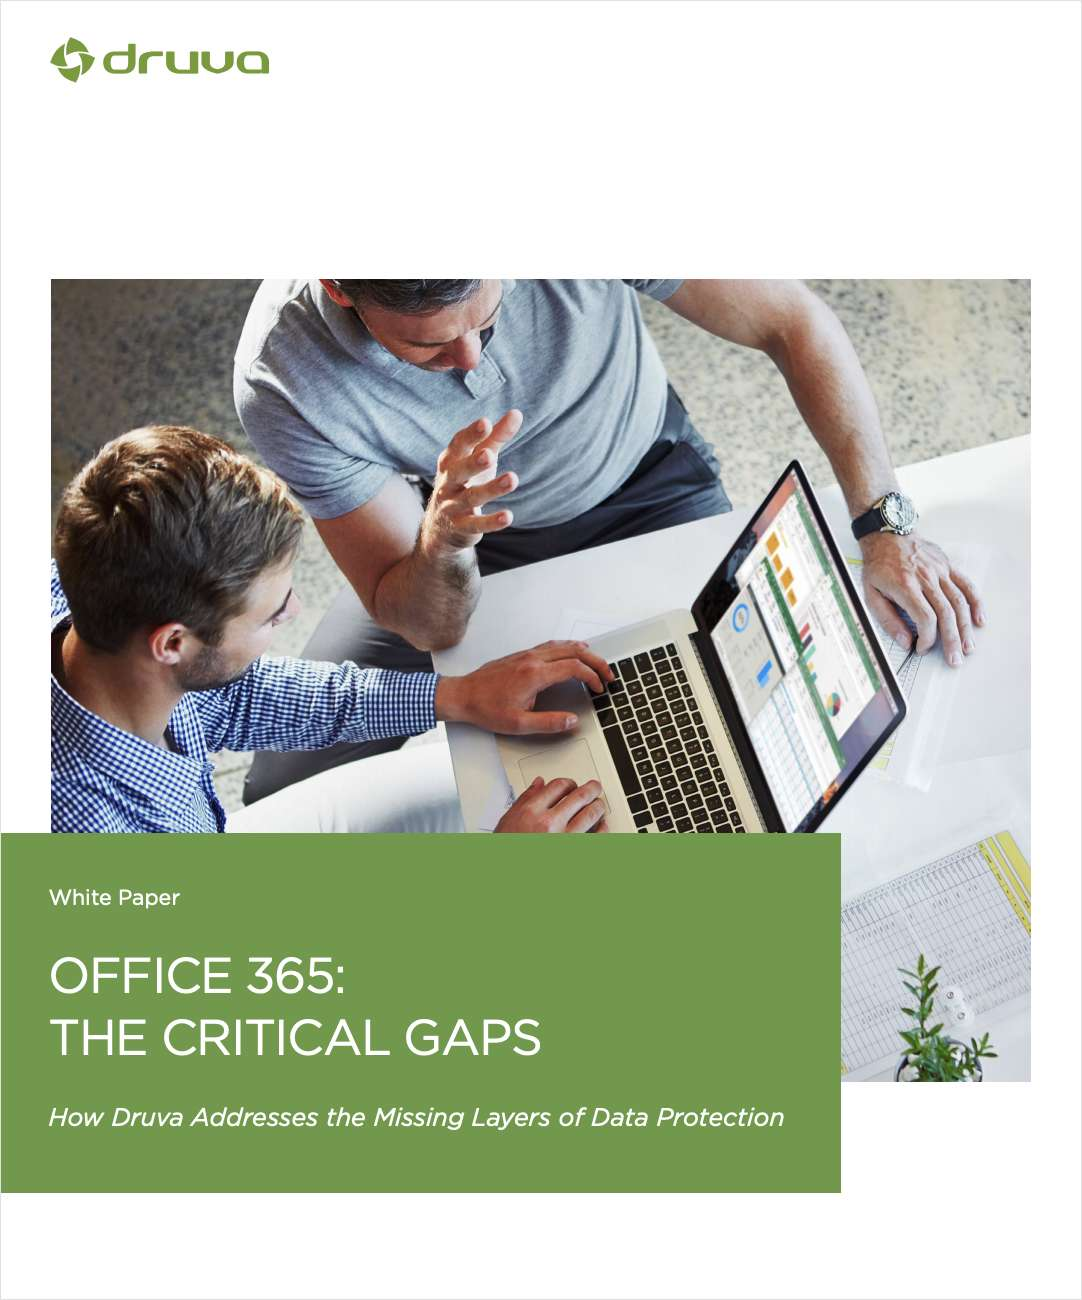 Office 365: The Critical Gaps